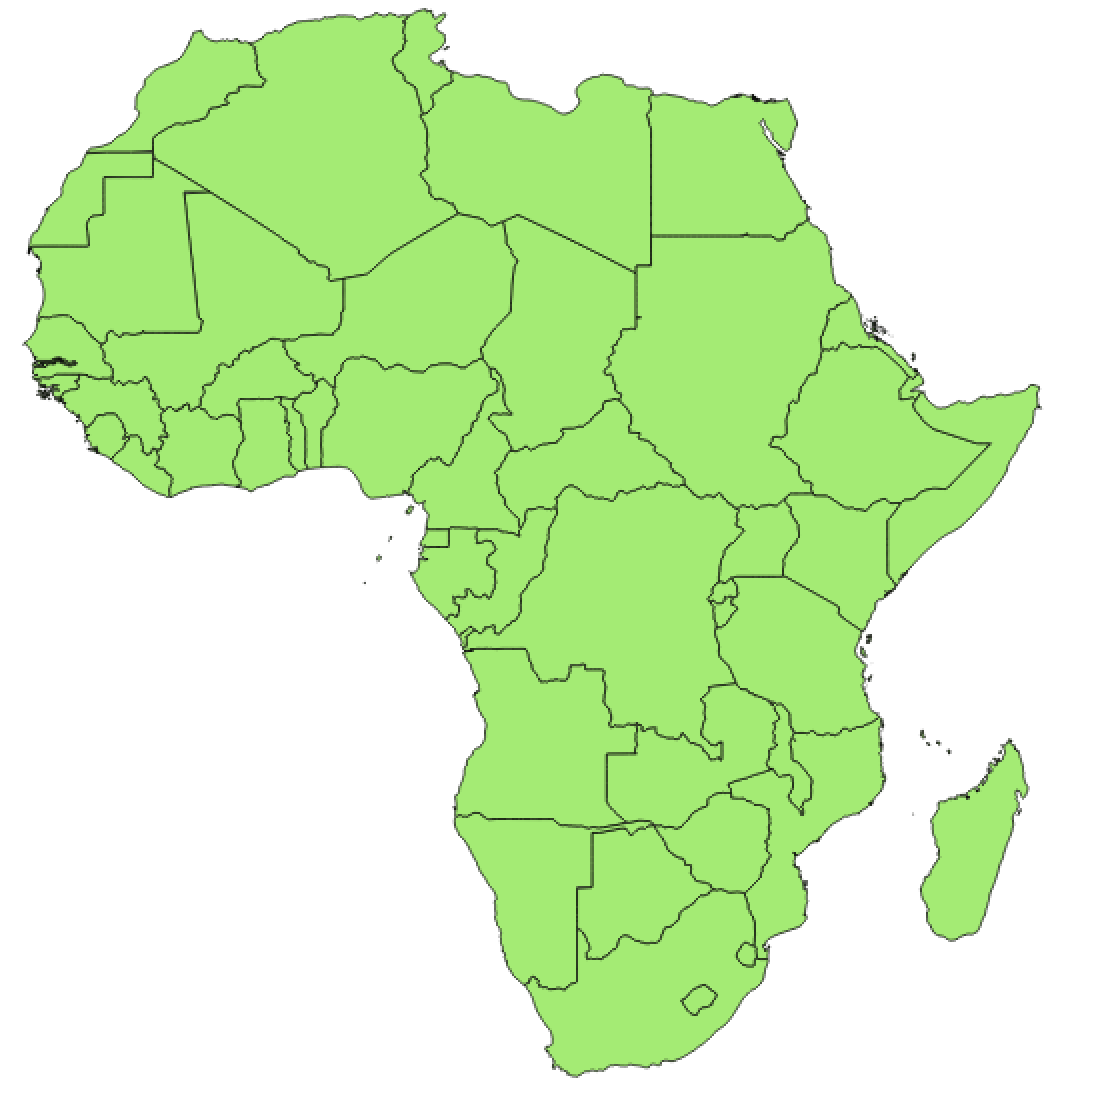 Which African country has the most number of neighbours?